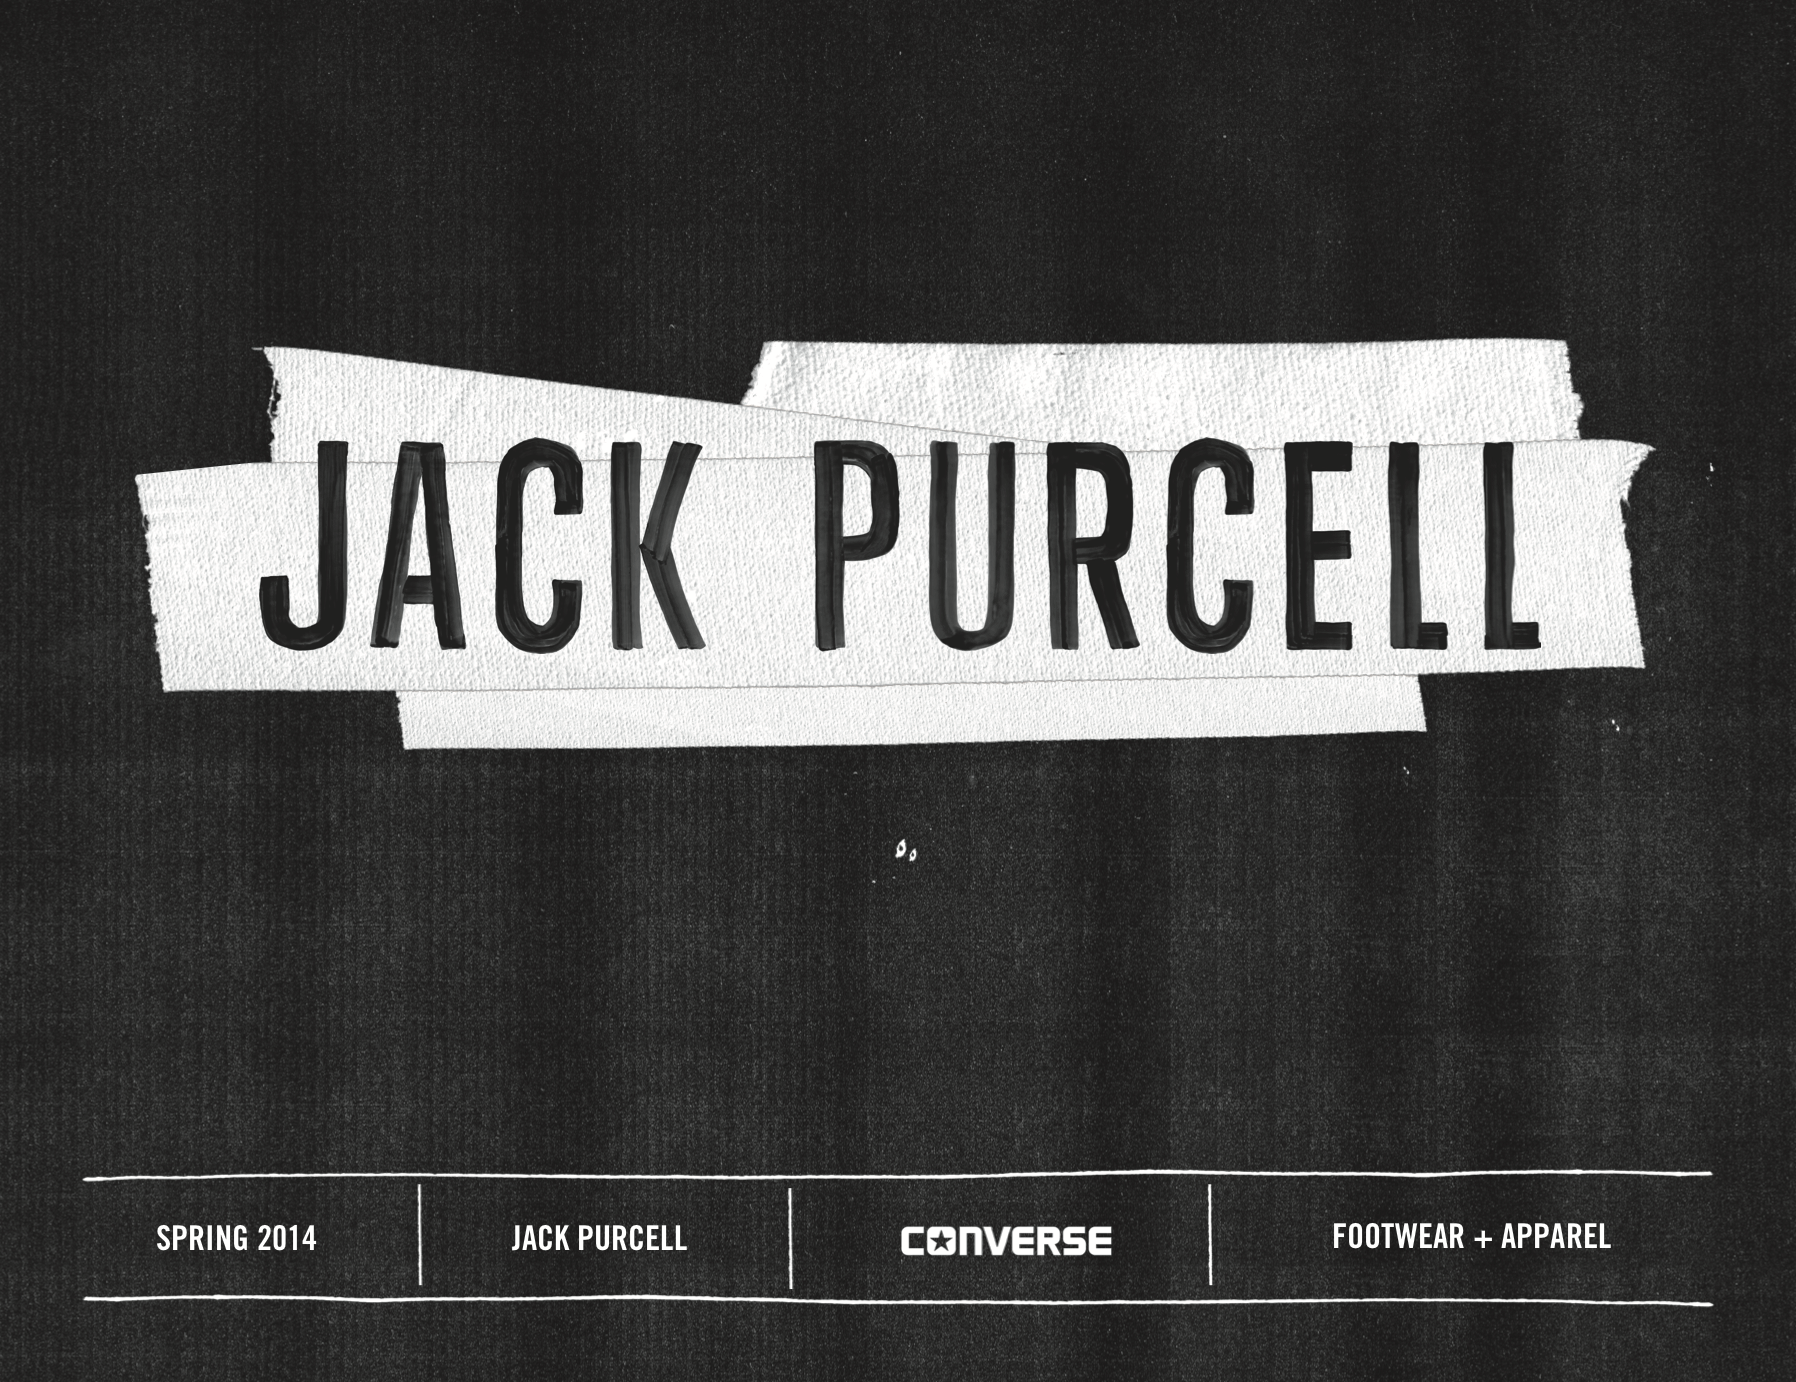 Converse SP14 Jack Purcell Lookbook / click image to view